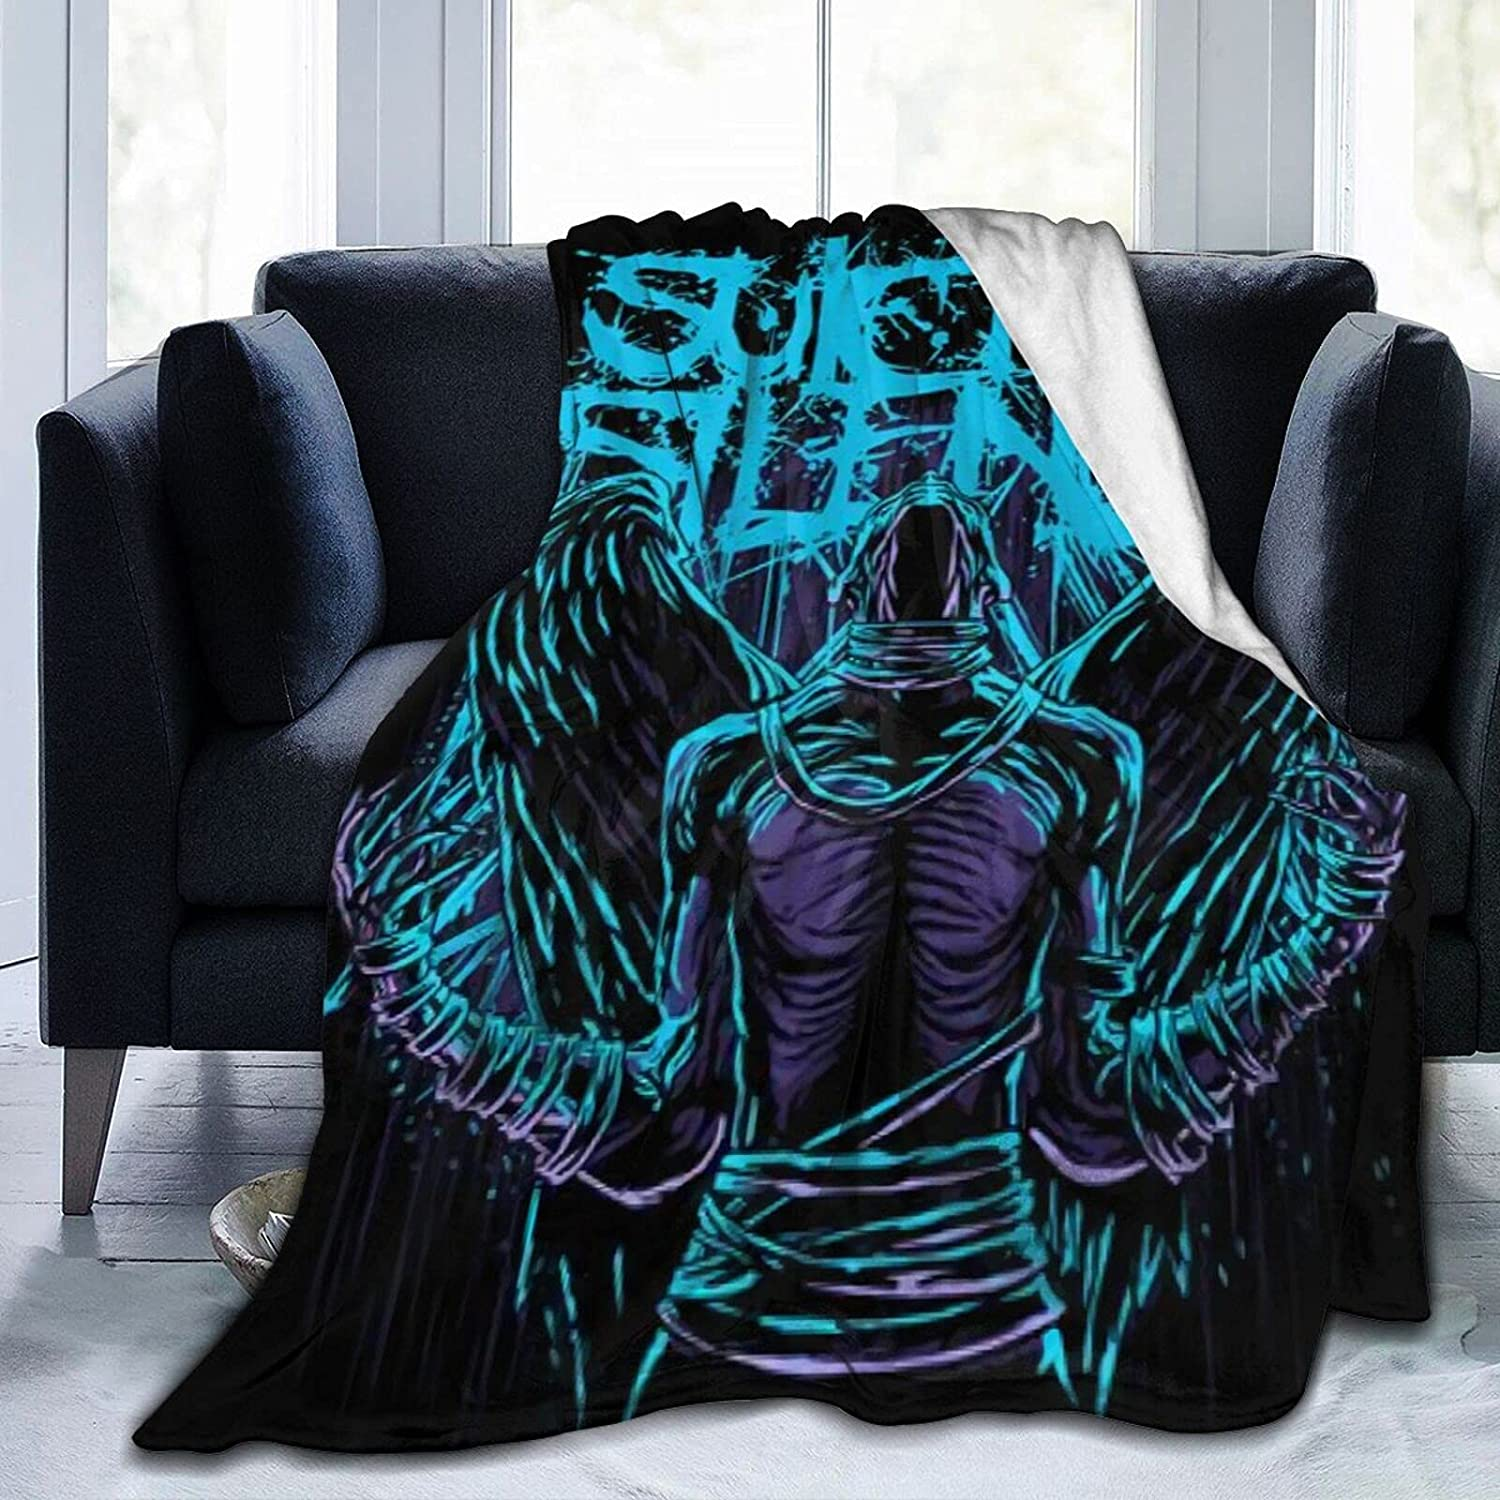 S-UIC-IDE Si-Len-Ce Blanket 3D Recommendation Sale Special Price Printed Blankets Comfy Fuzzy Wool